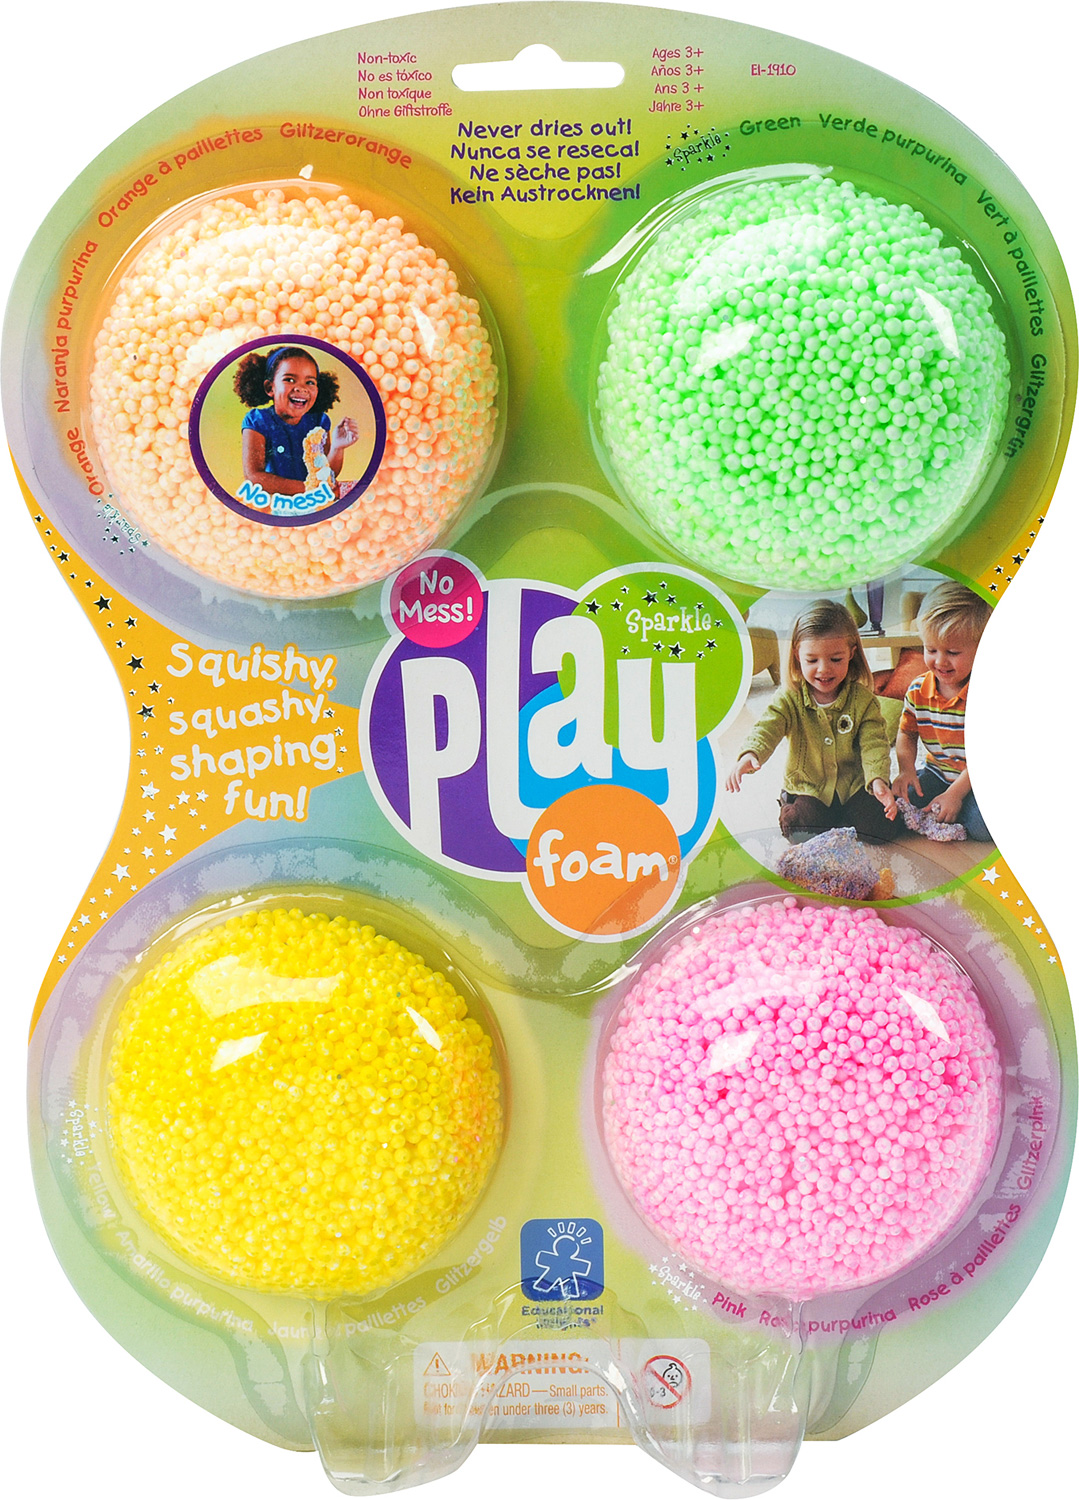 4 PACK SPARKLE PLAYFOAM